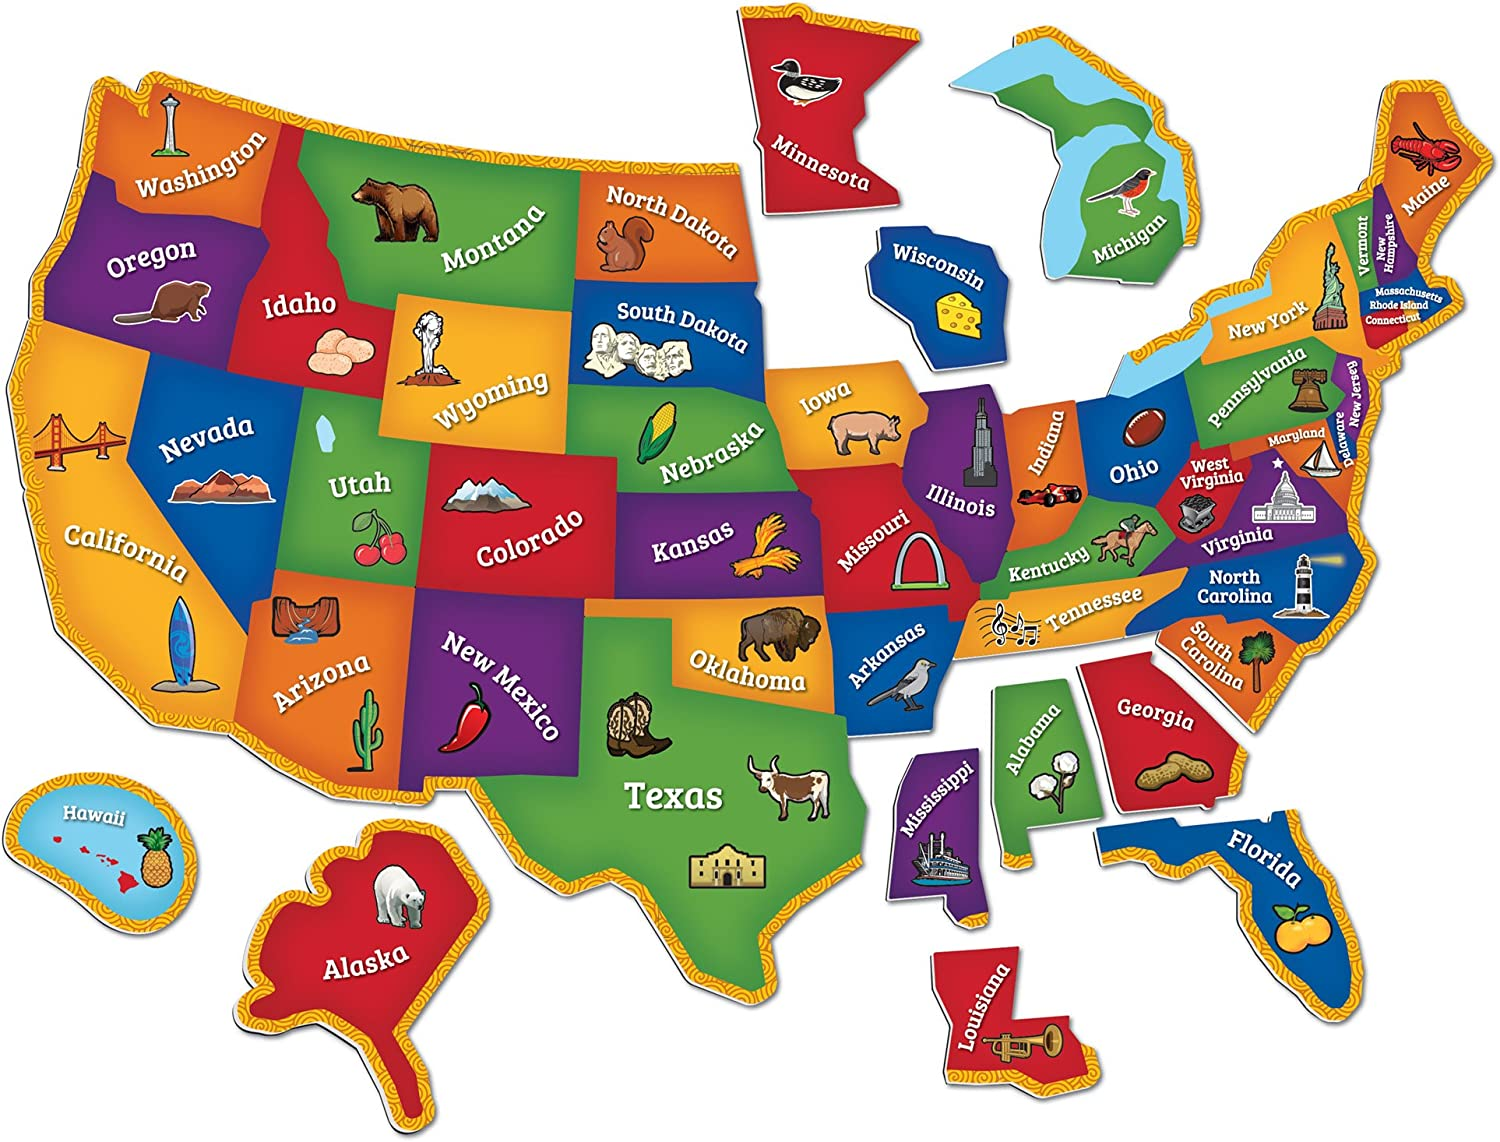 Interactive Us Map For Kids Amazon.com: Learning Resources Magnetic U.S. Map Puzzle, Geography